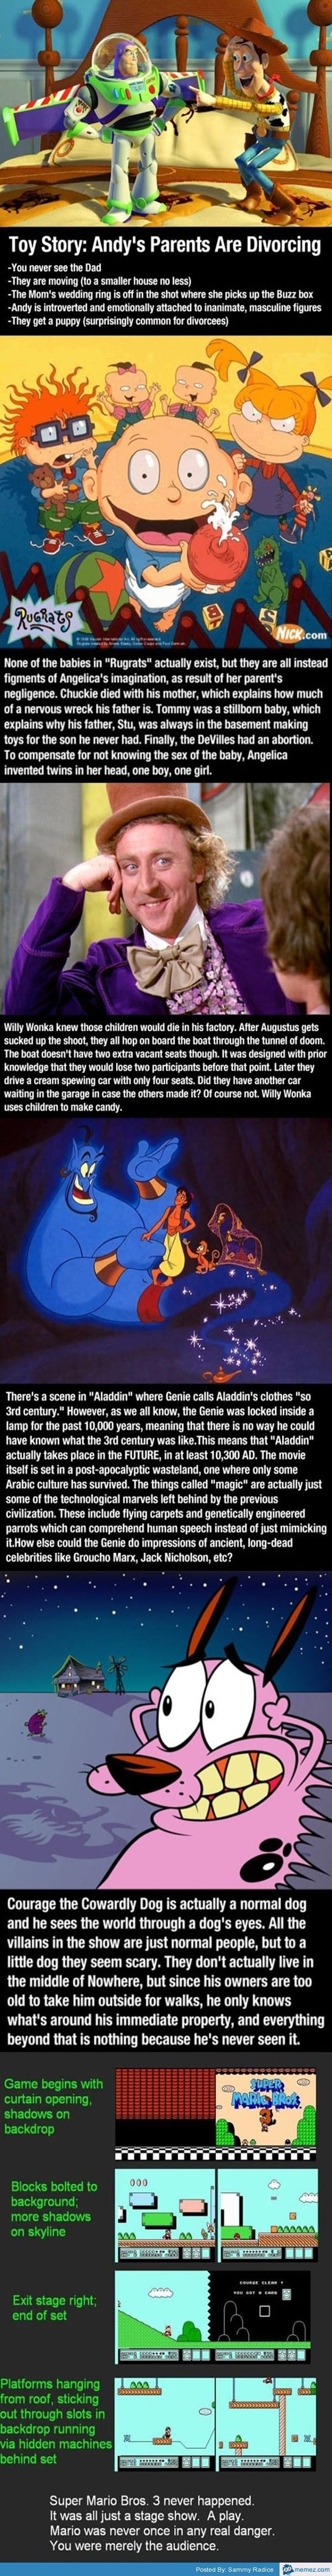 OMG the aladdin conspiracy theory!